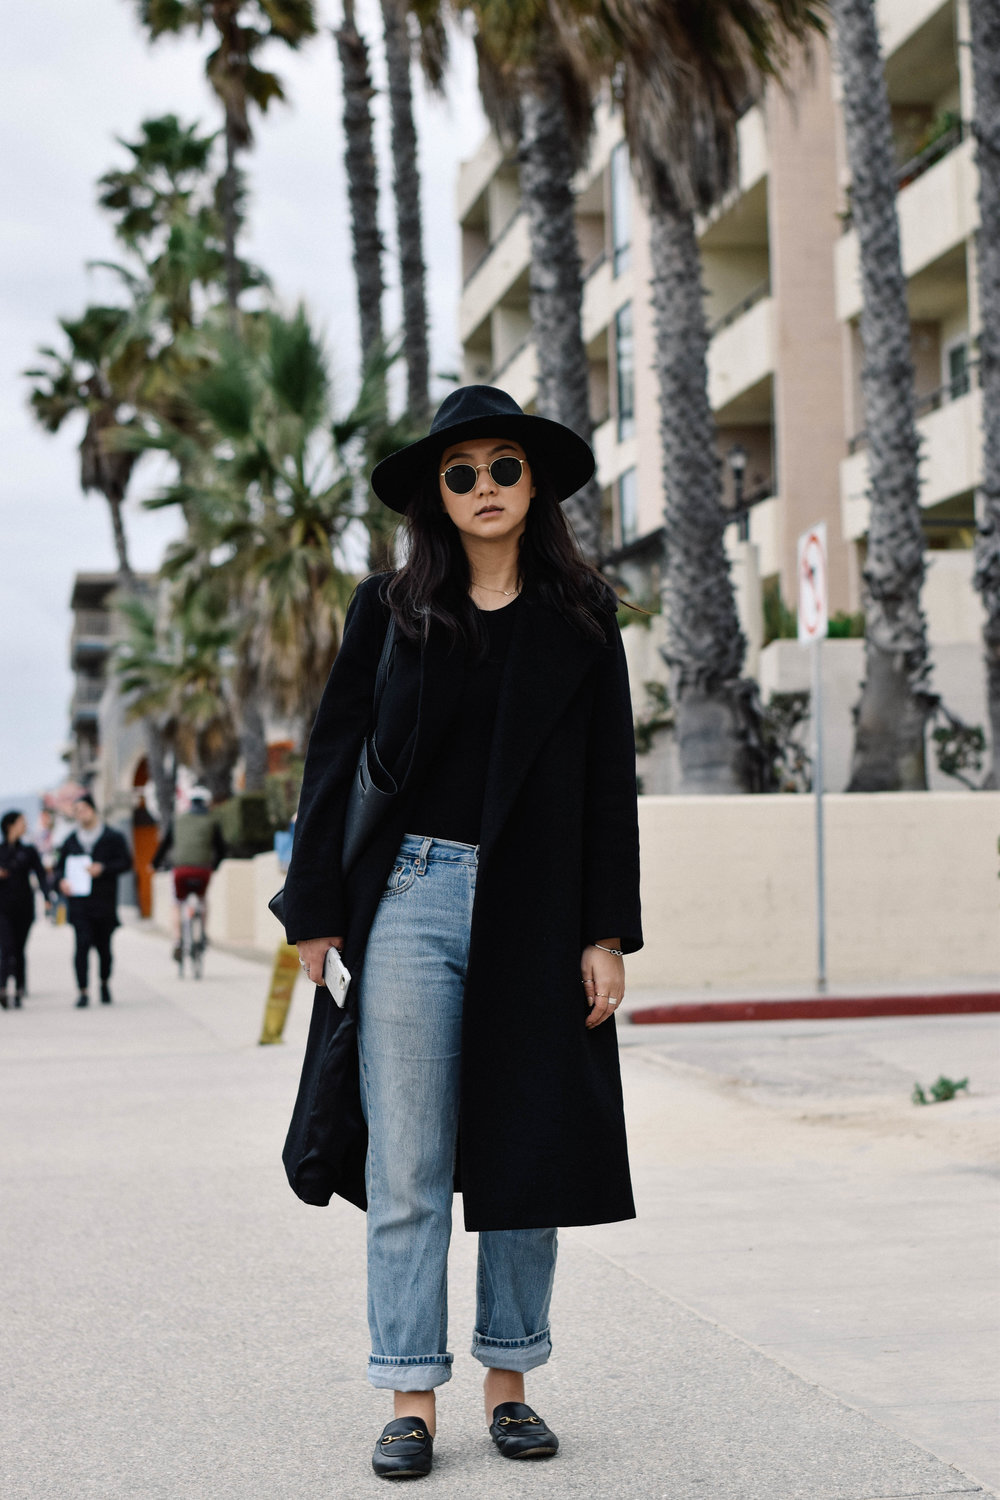 BRIXTON   hat     / LEVIS   jeans     / GUCCI   loafers   /  custom-made maxi coat